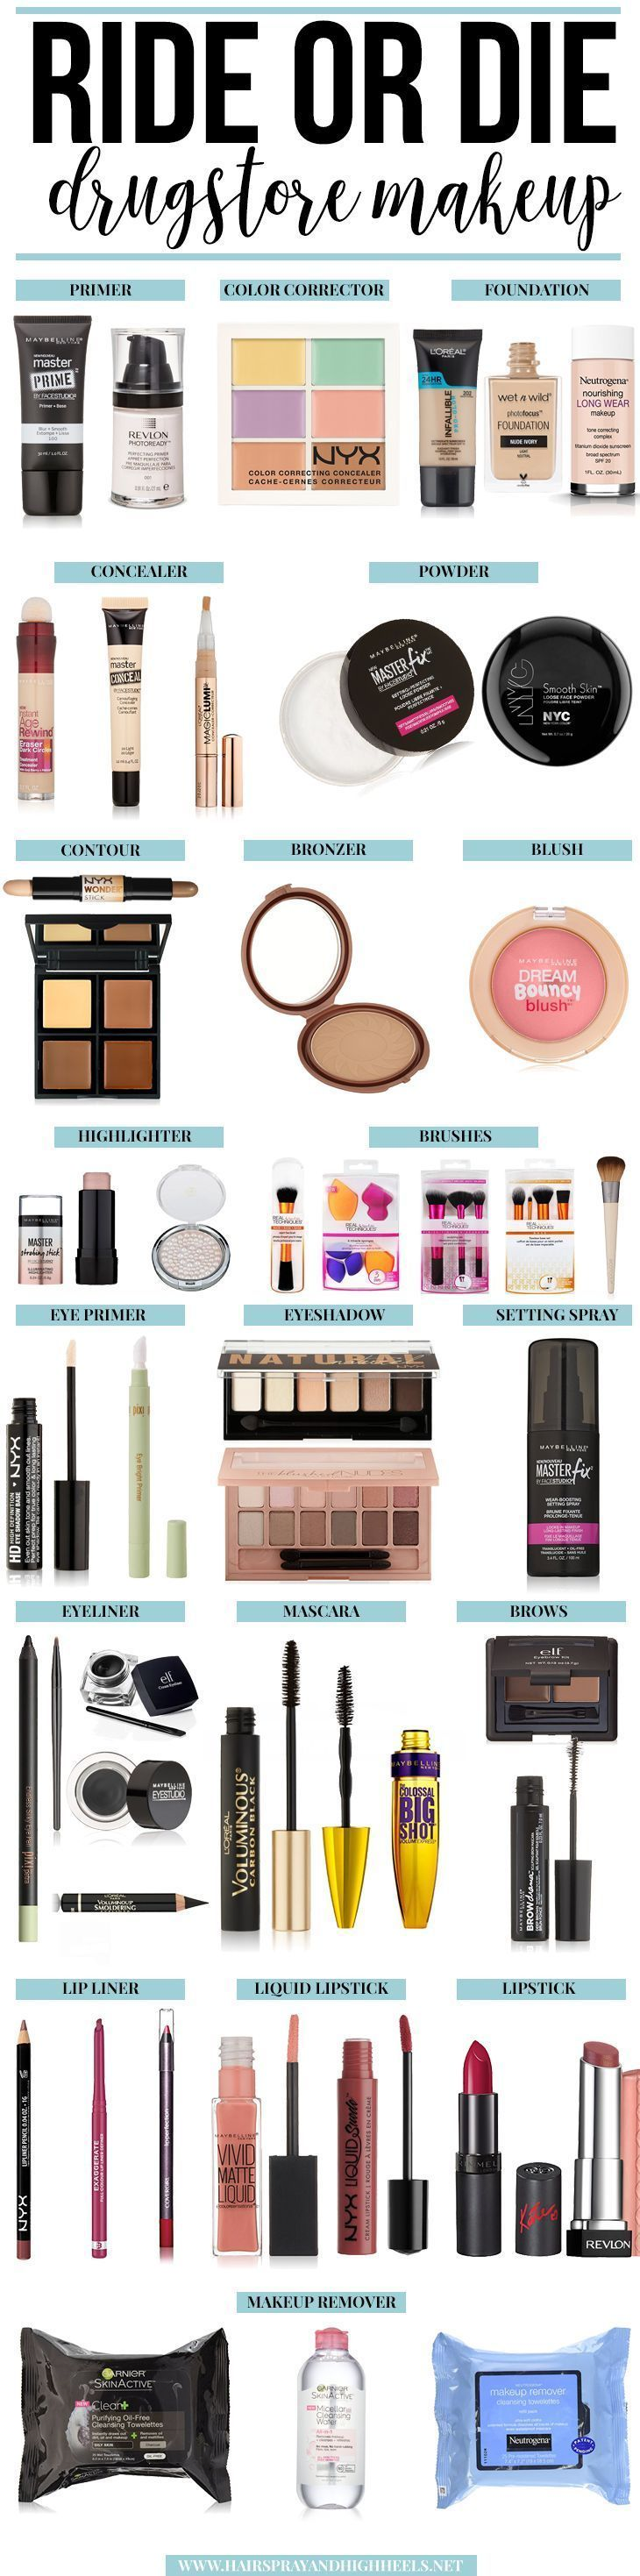 Are you in need of an updated makeup routine? Check out the Ride or Die Makeup p...